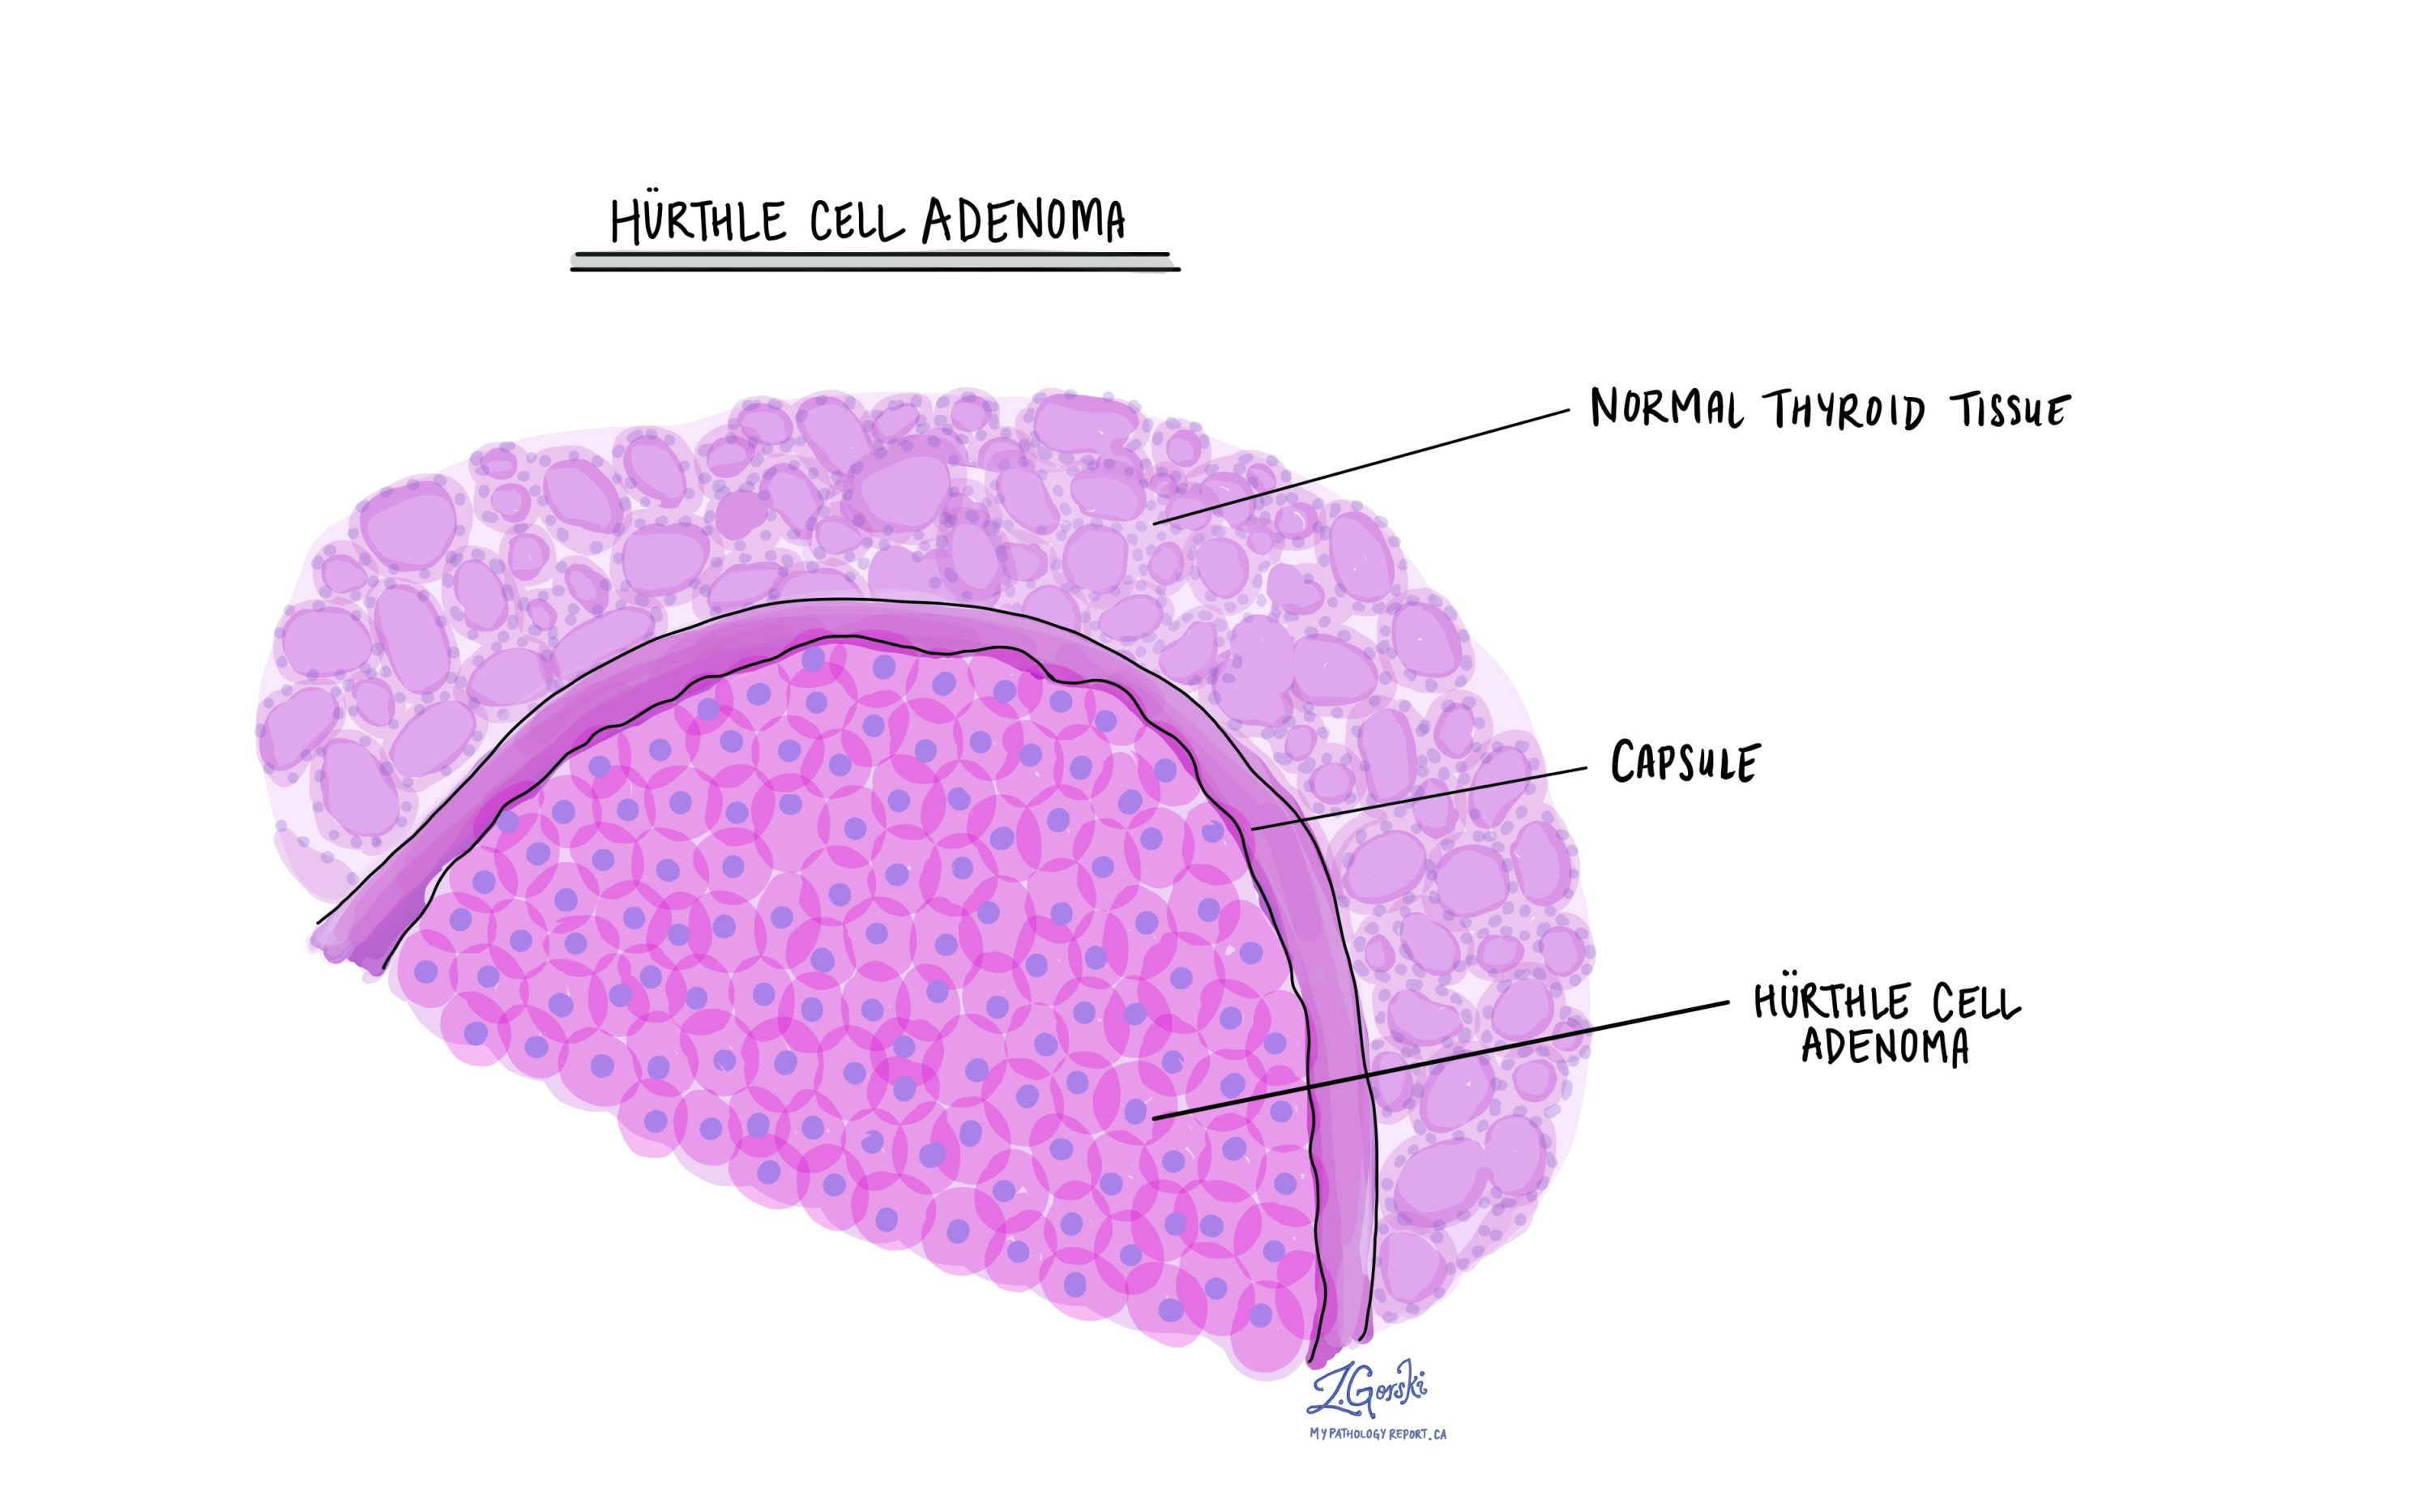 Hurthle cell adenoma